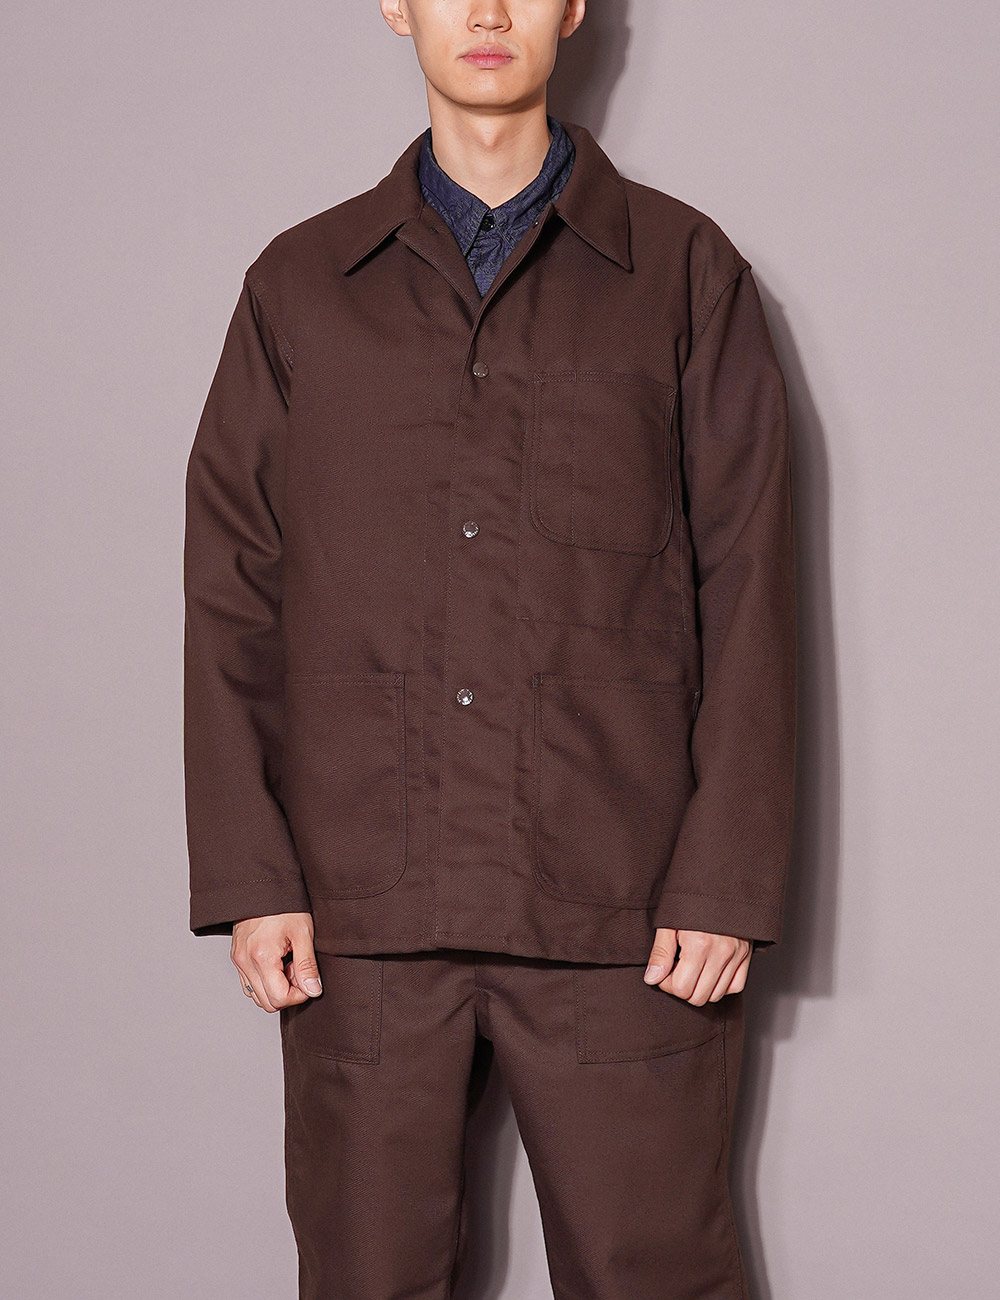 Engineered Garments WORKDAY : UTILITY JACKET (BROWN)